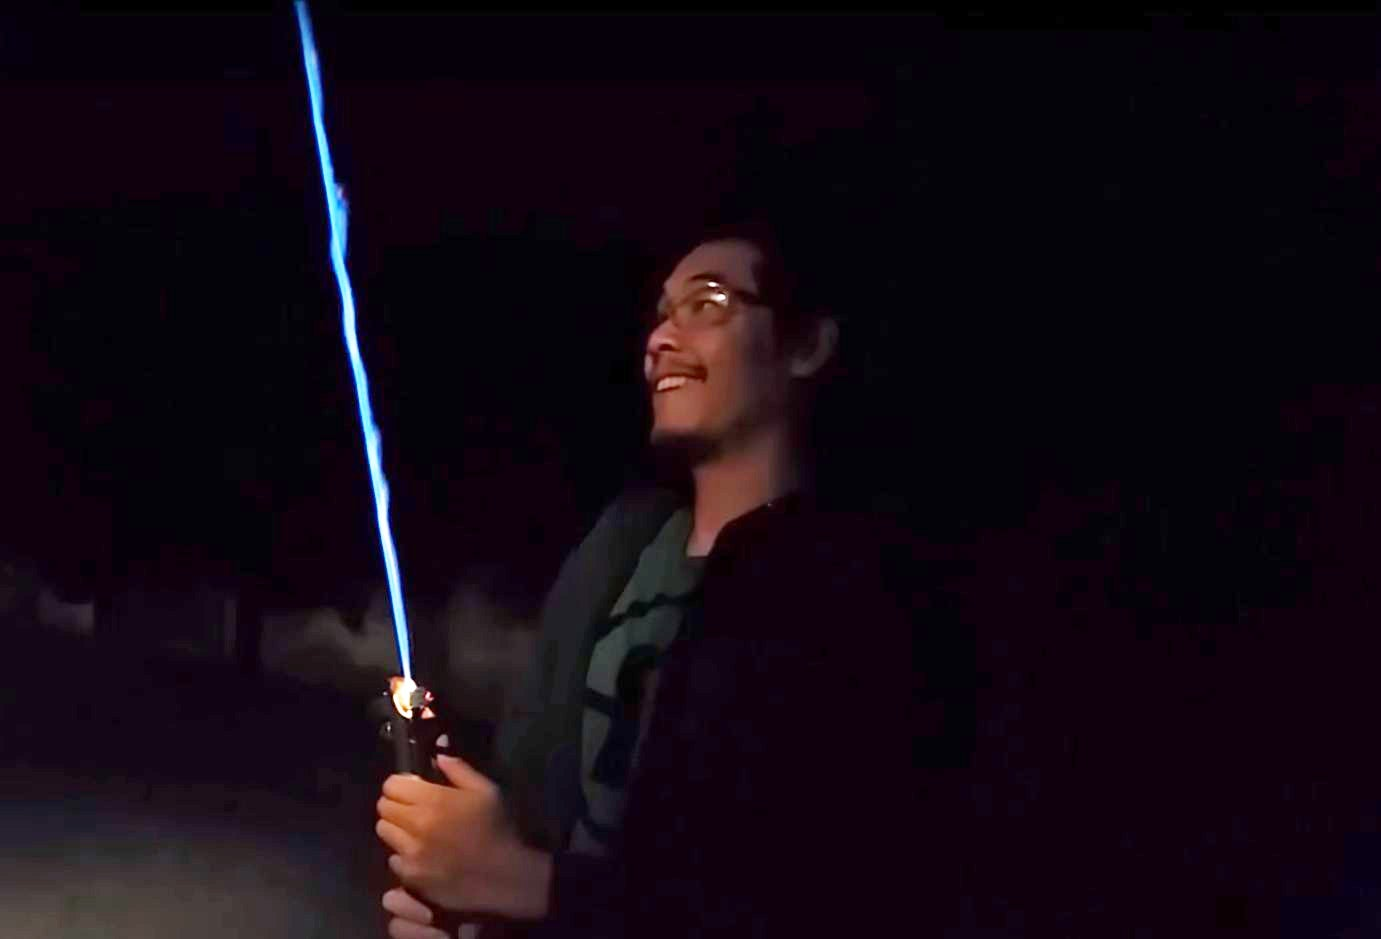 Star Wars fan makes his own lightsaber and posts YouTube video